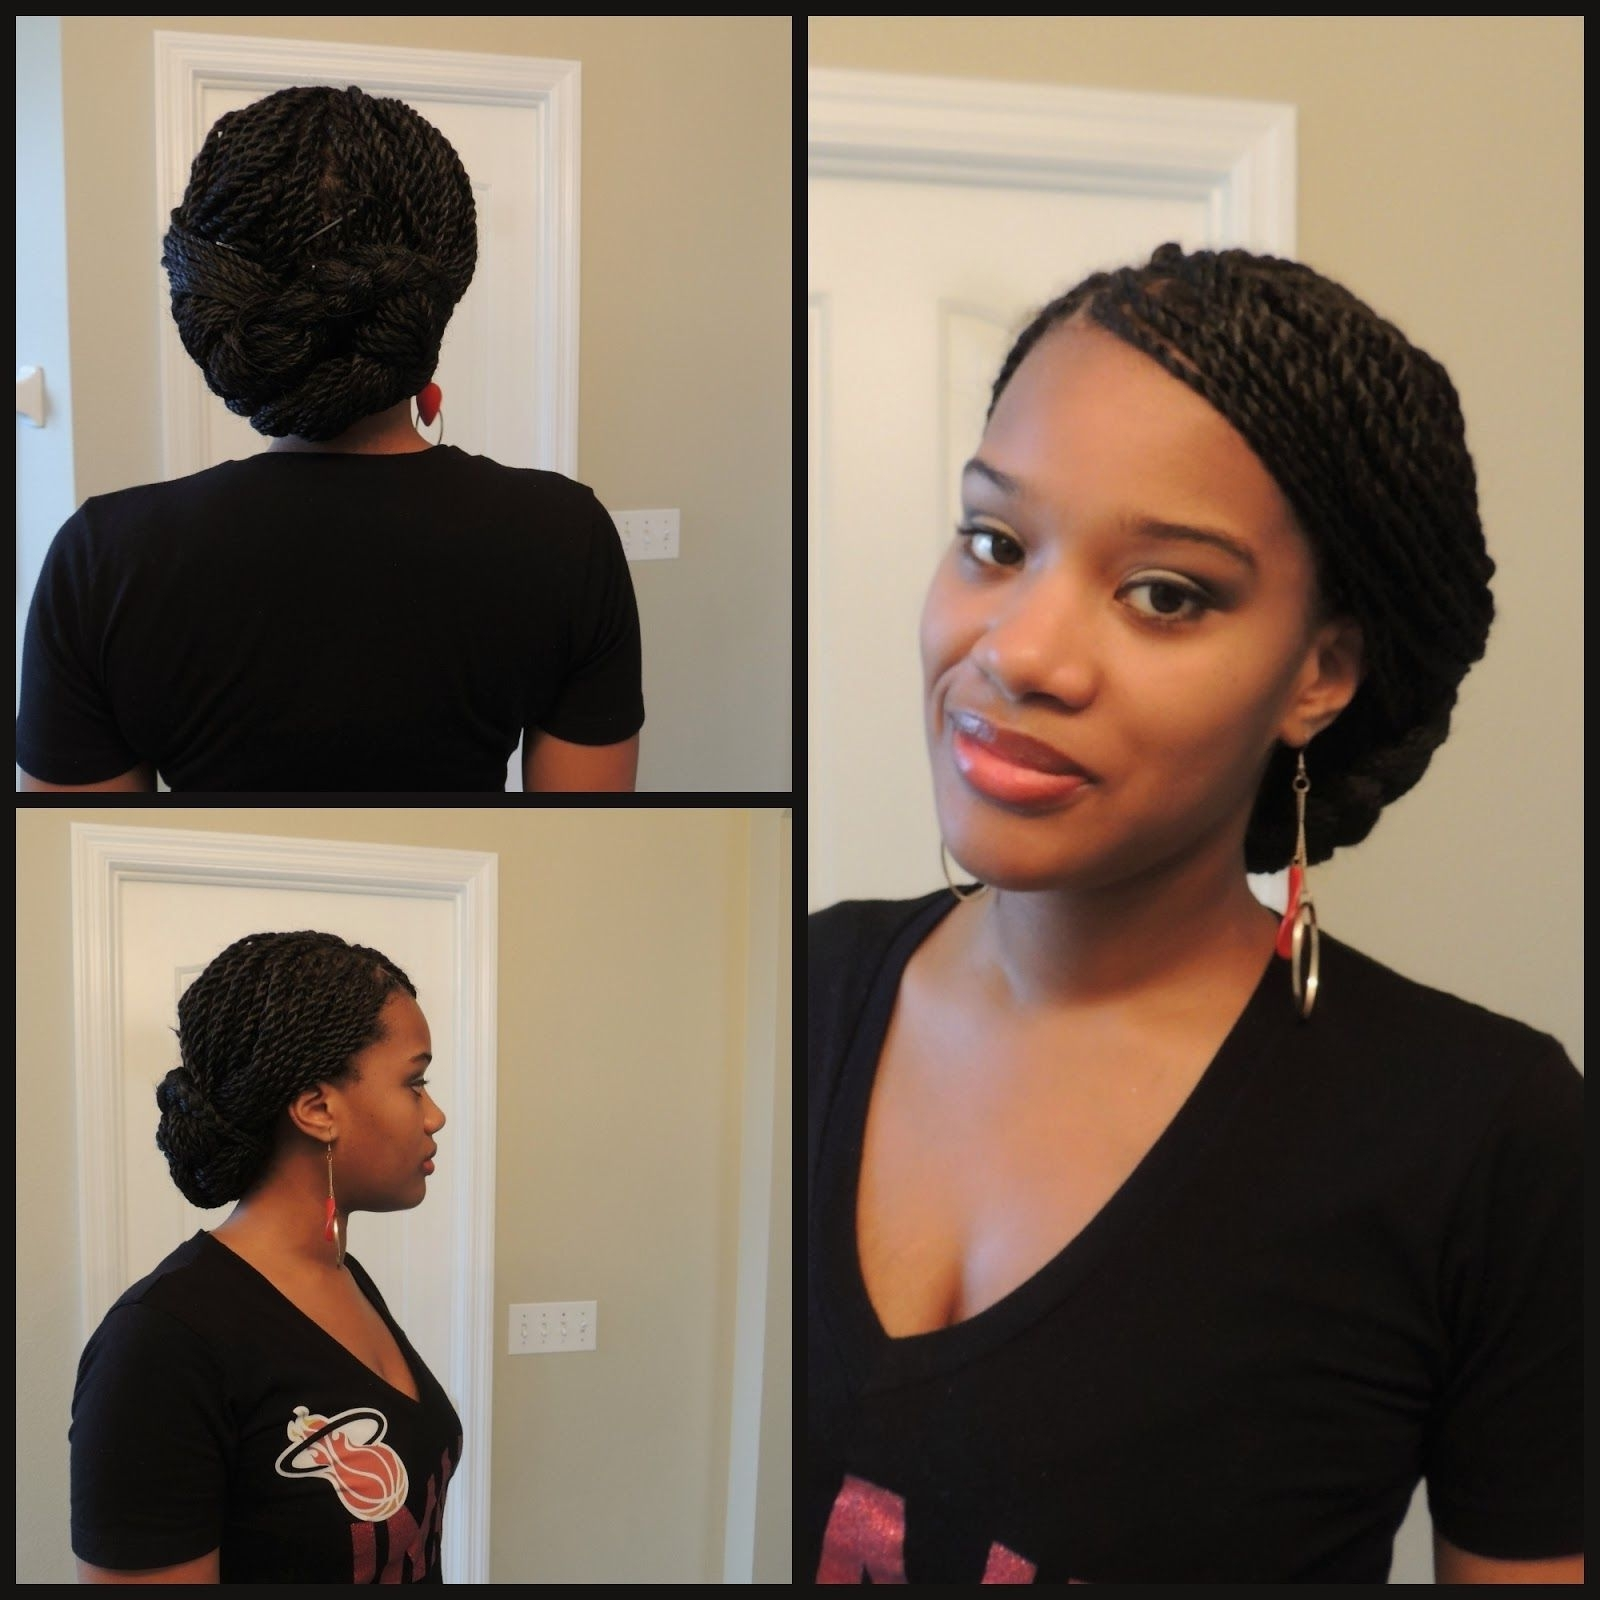 Senegalese Twist (briaded Low Bun) | Braids And Senegalese Twists With Senegalese Twist Styles Updo Hairstyles (View 2 of 15)